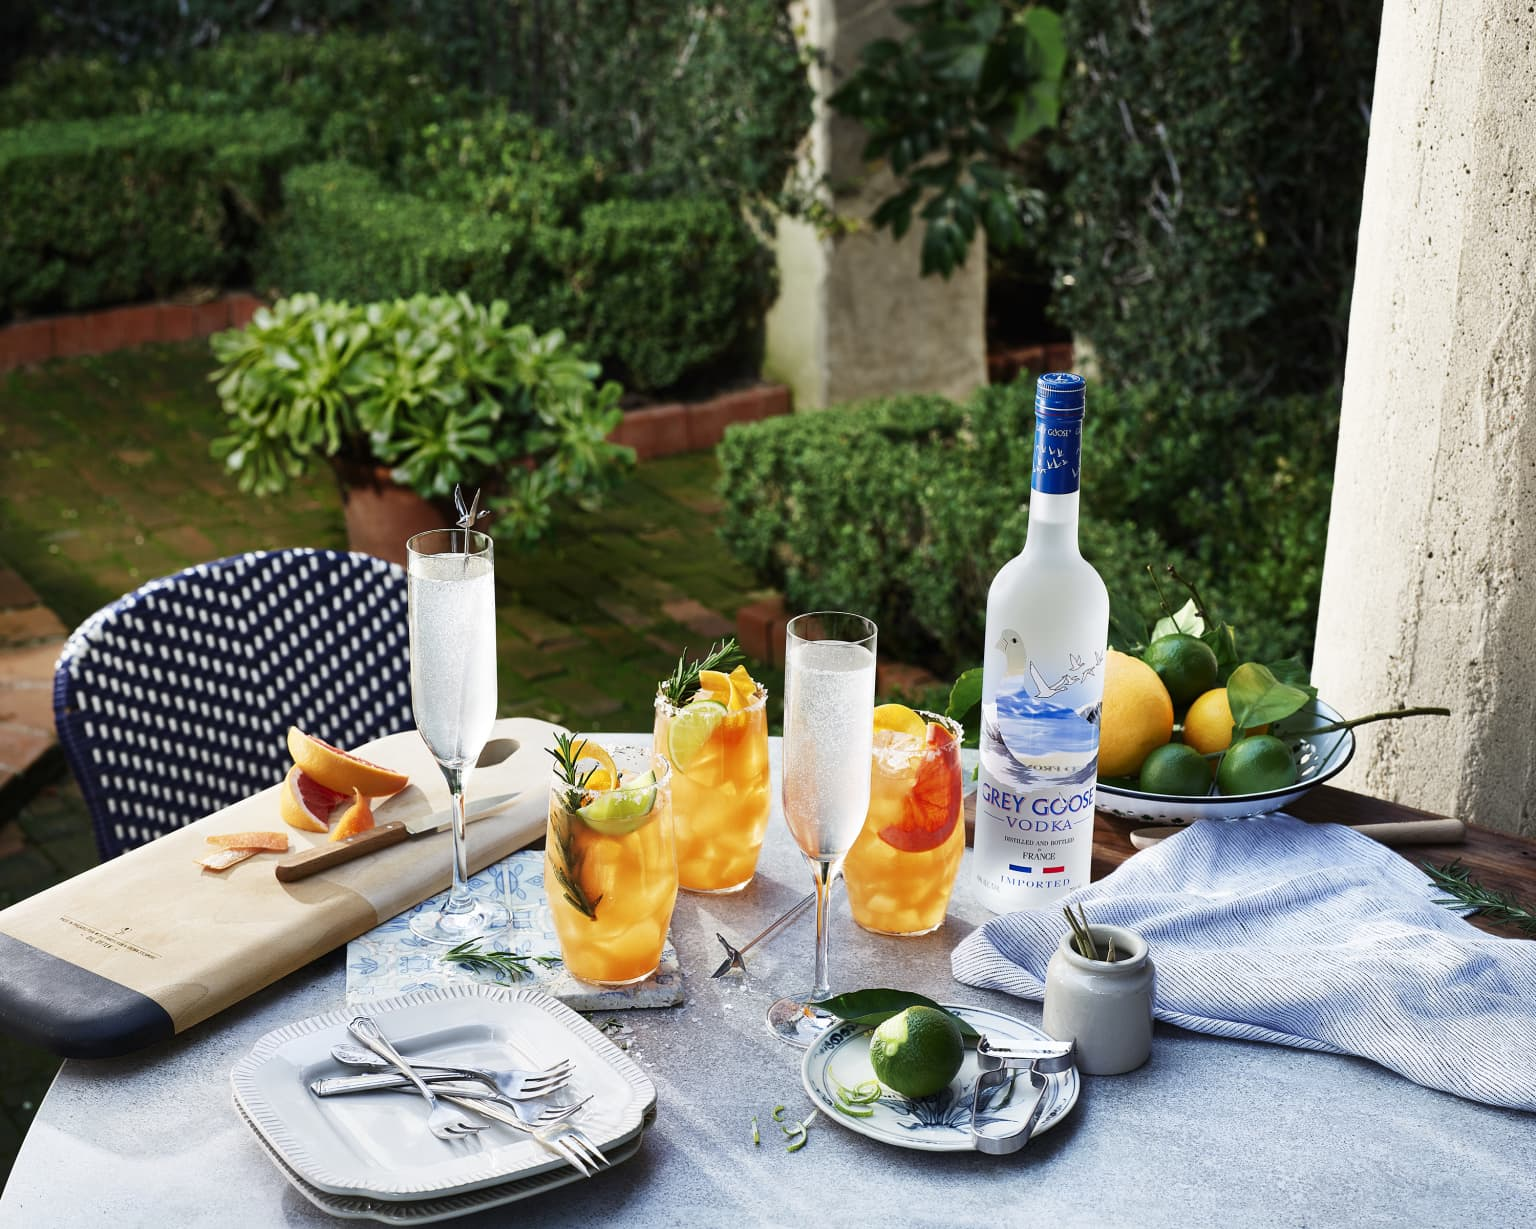 """Grey Goose """"Live Victoriously"""" Campaign"""